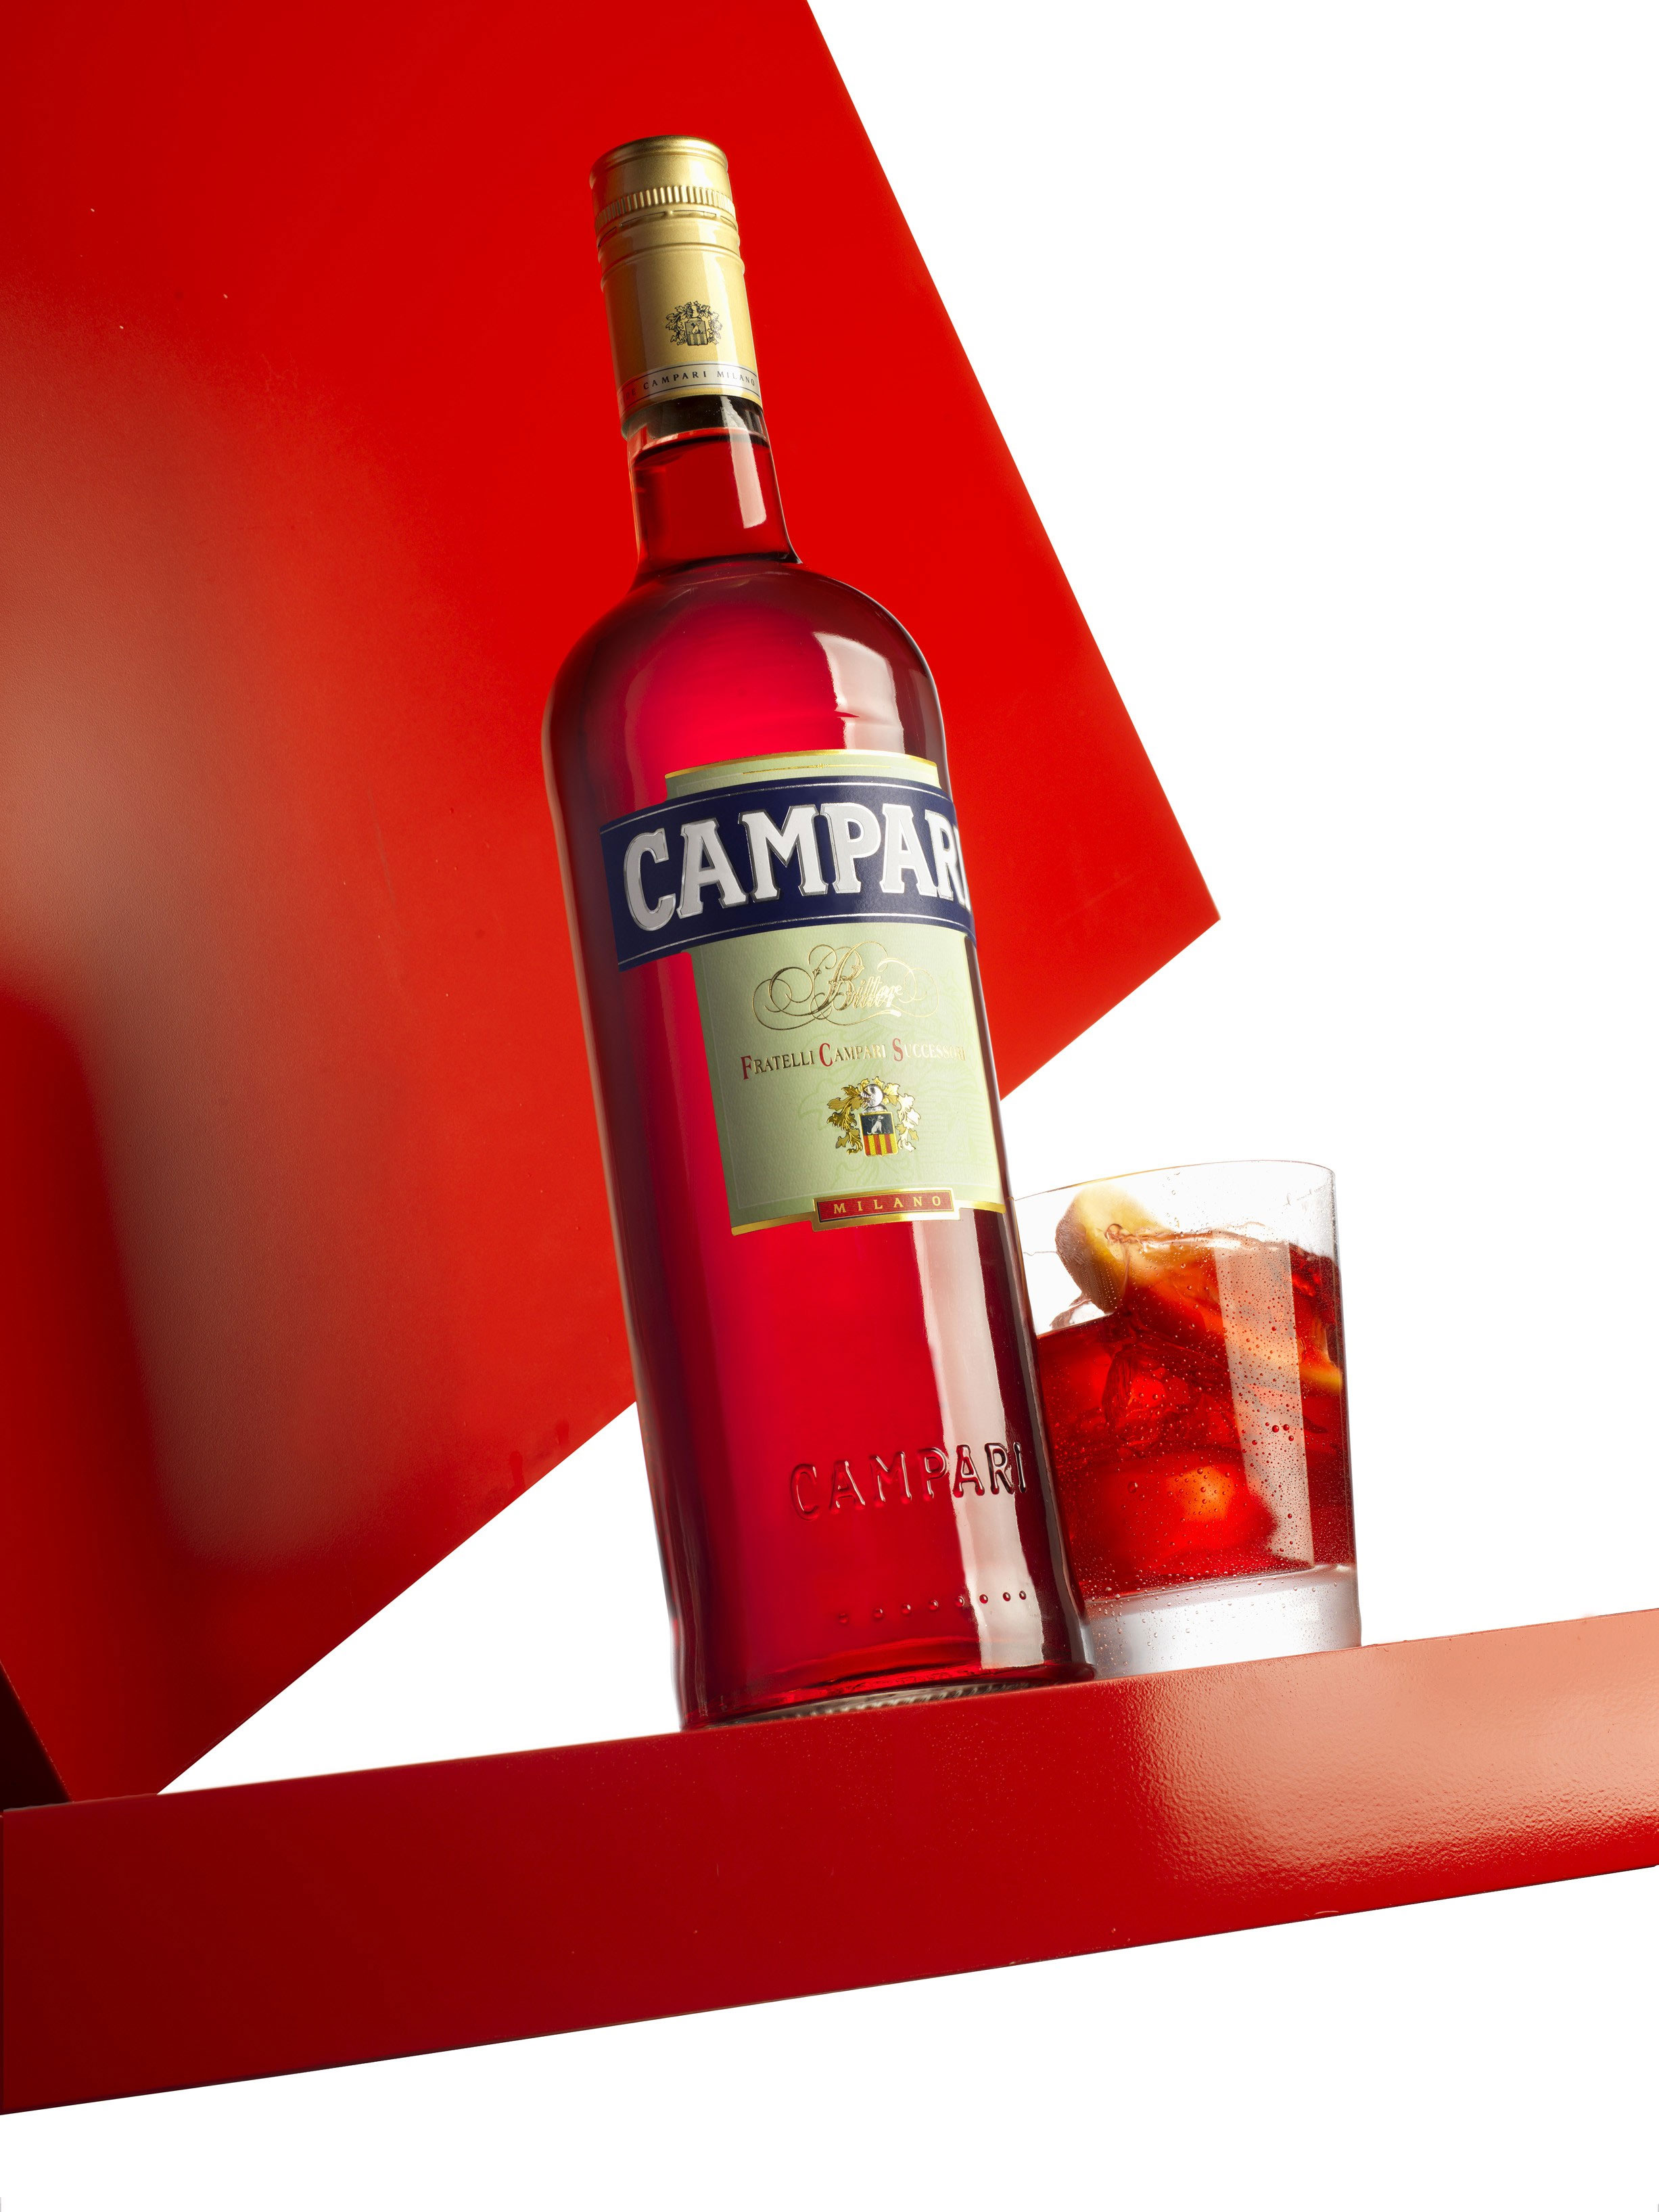 Cocktail-Gläser Campari Soda - Sommer-Cocktail mit sexy Penelope Cruz